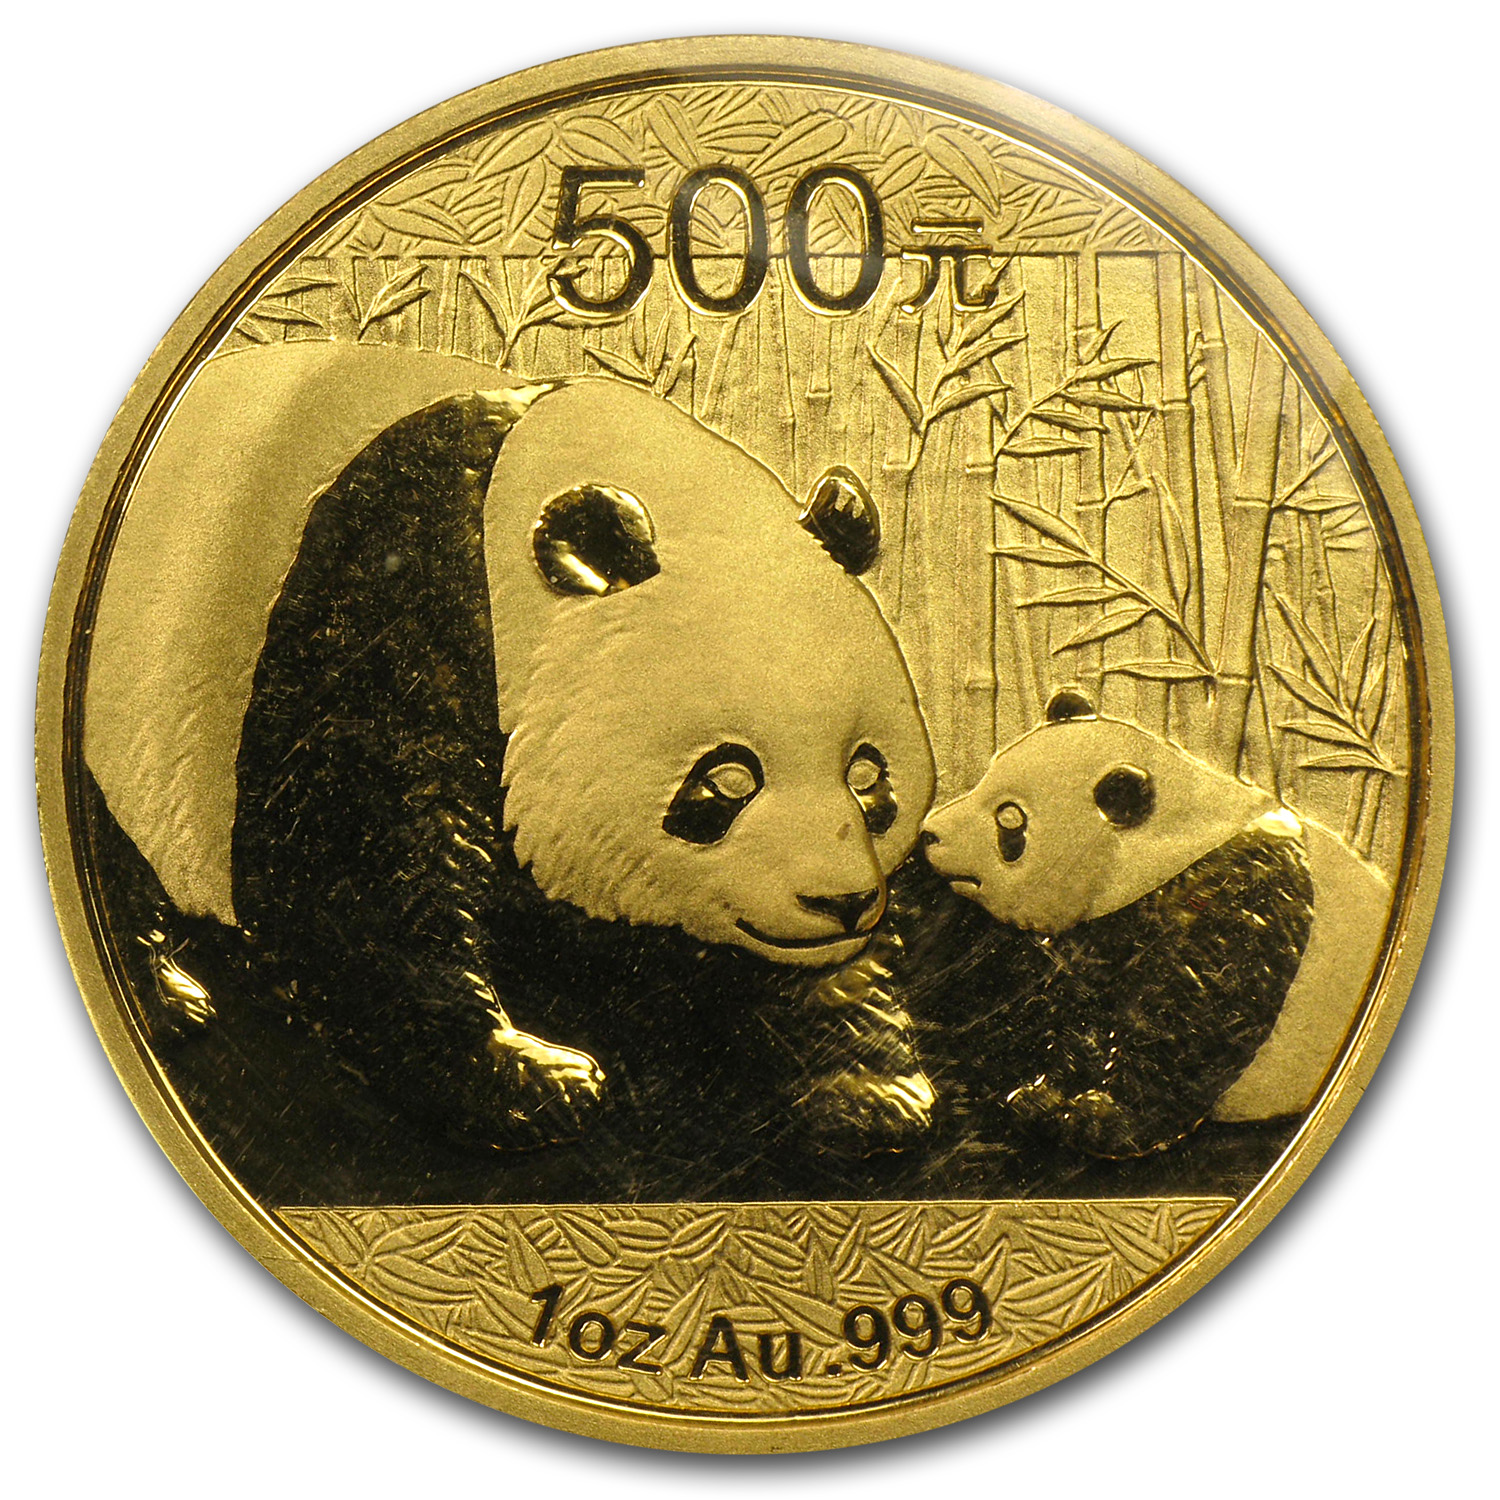 2011 China 1 oz Gold Panda BU (Sealed)